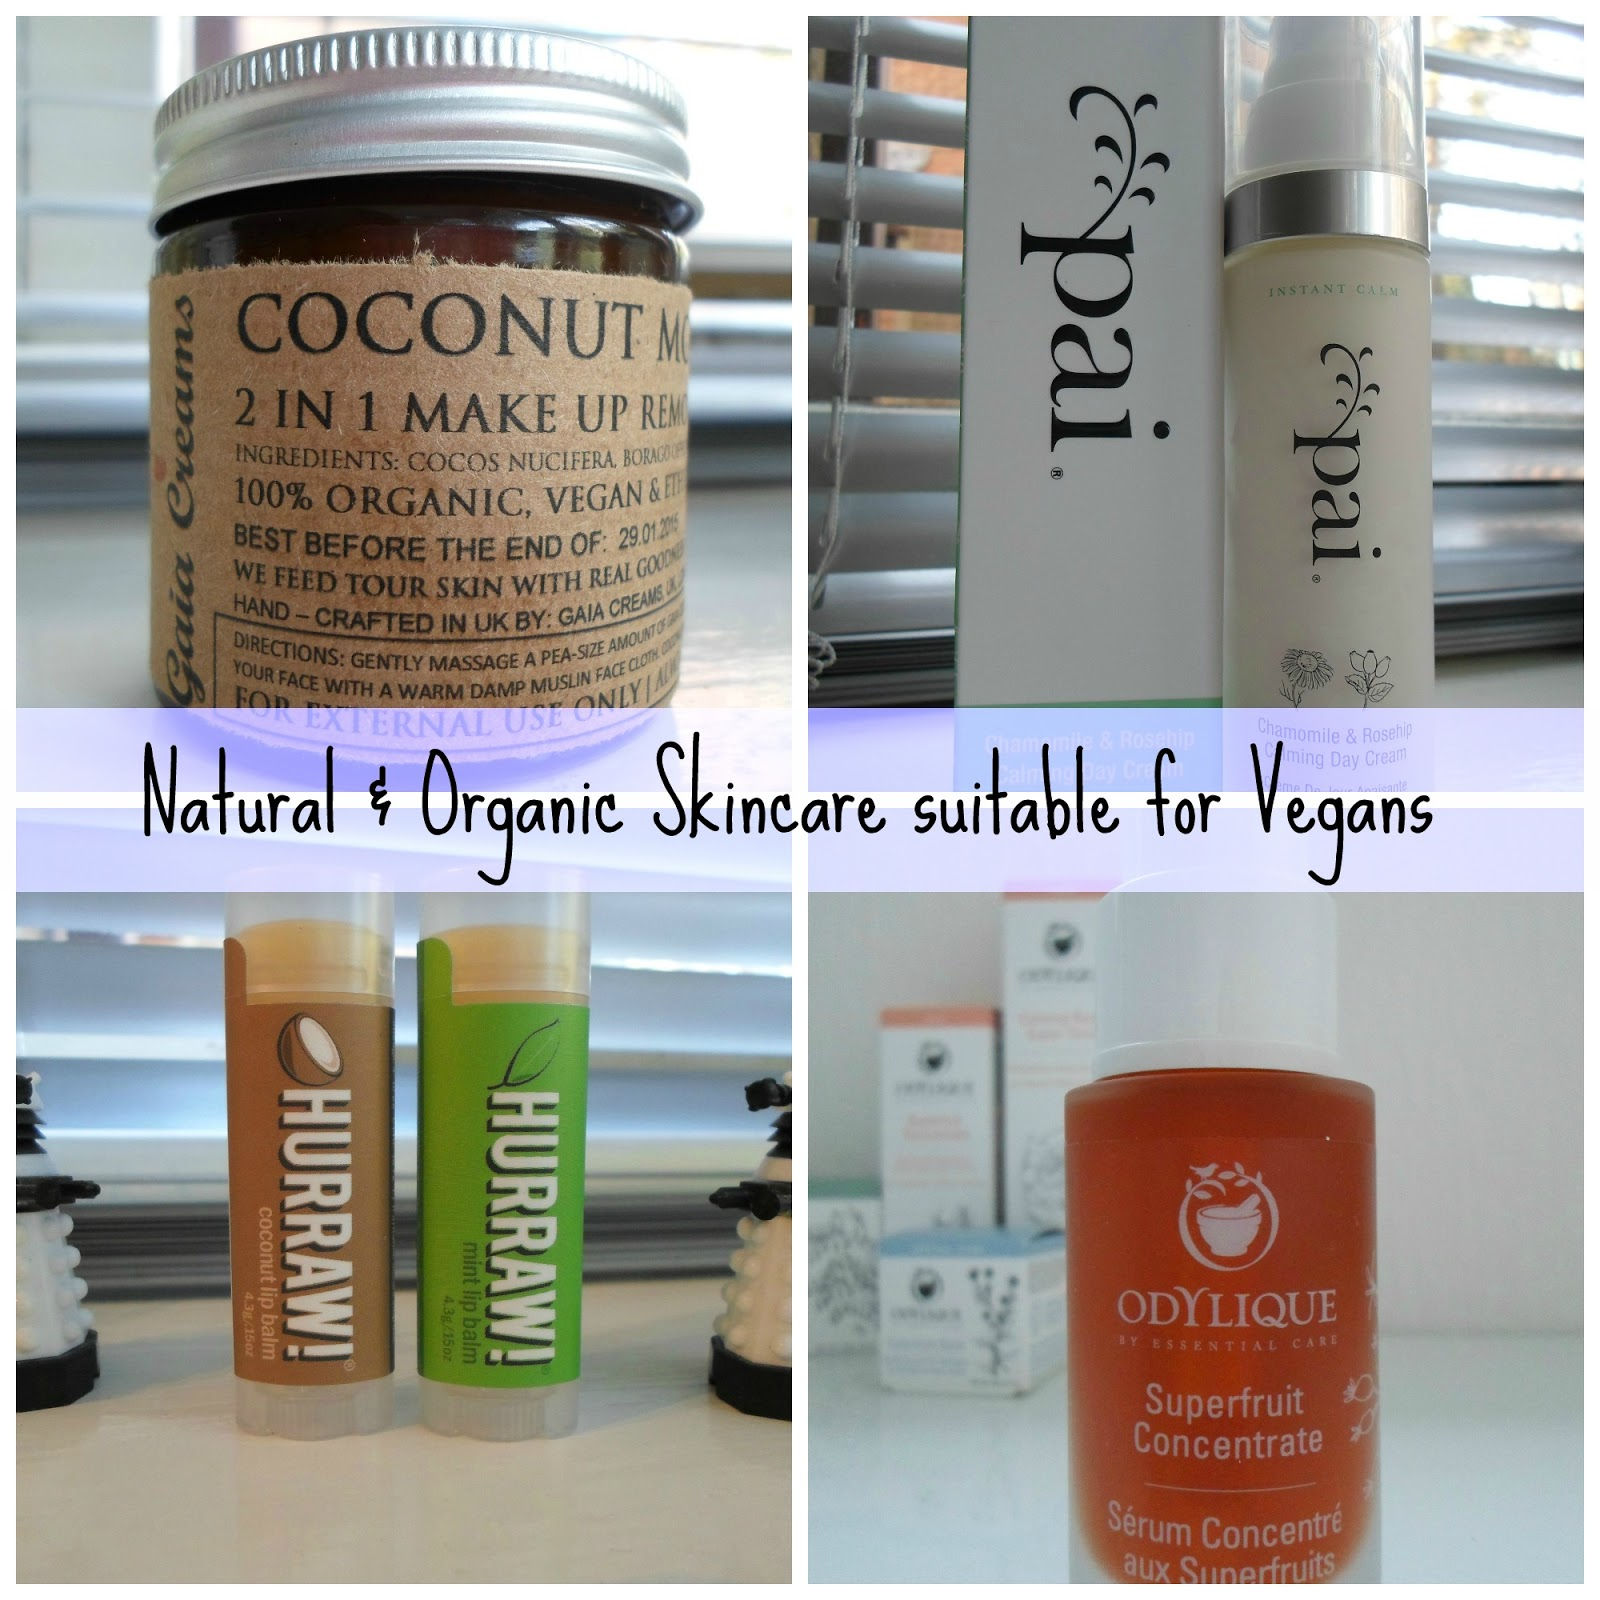 Natural and Organic Skincare Suitable for Vegans